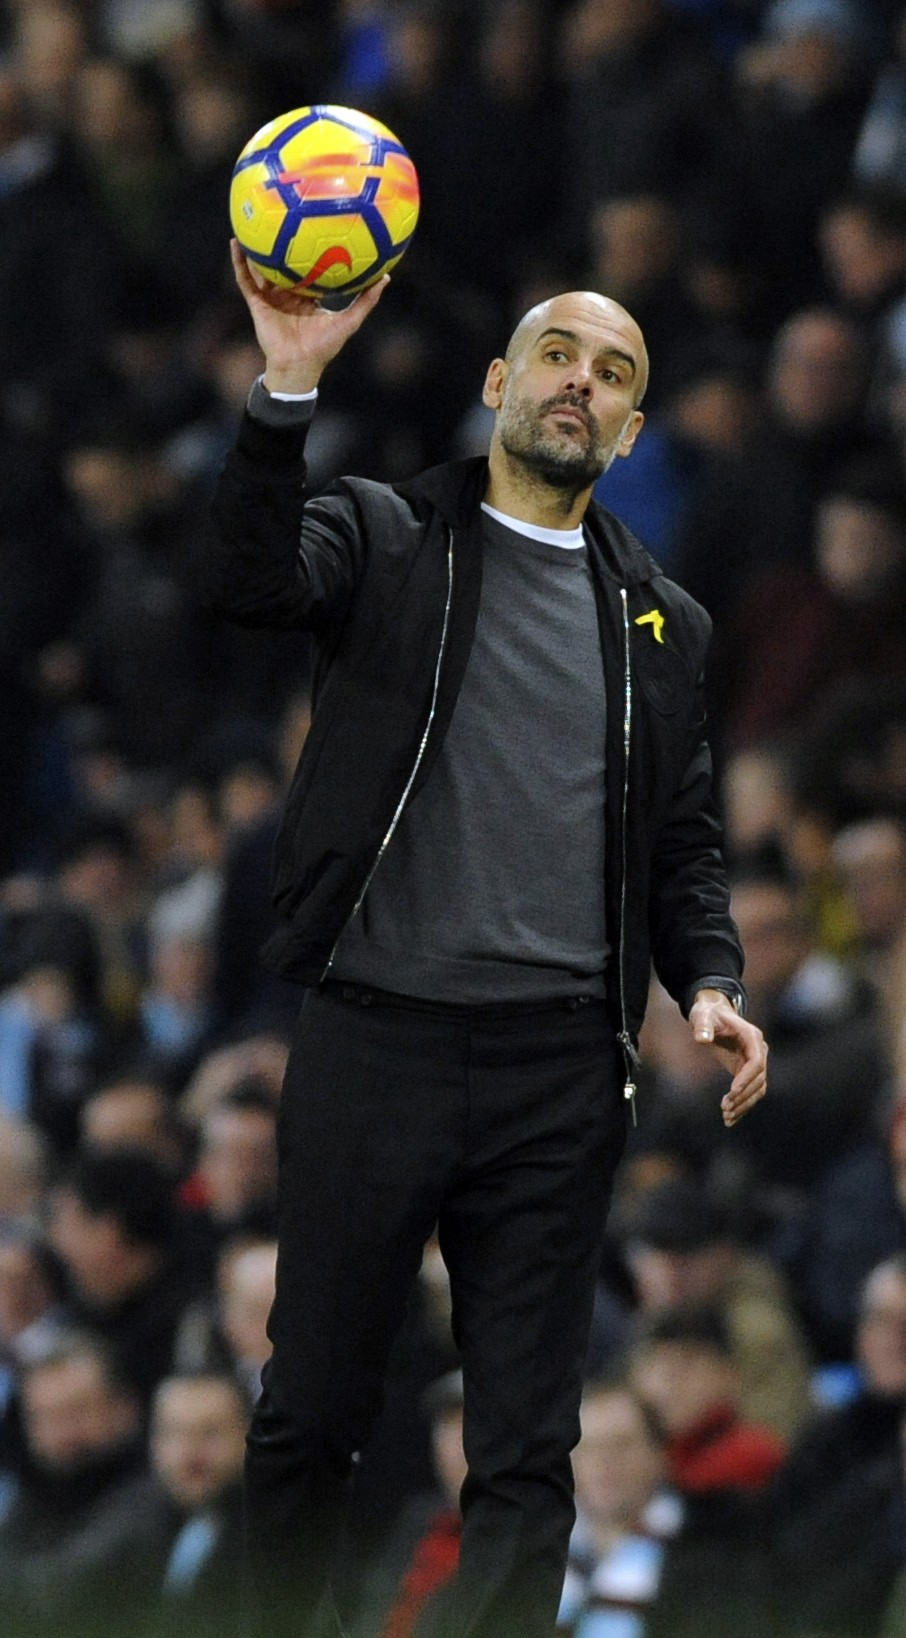 Manchester City manager Josep Guardiola returns the match ball to play during the English Premier League soccer match between Manchester City and Bour...